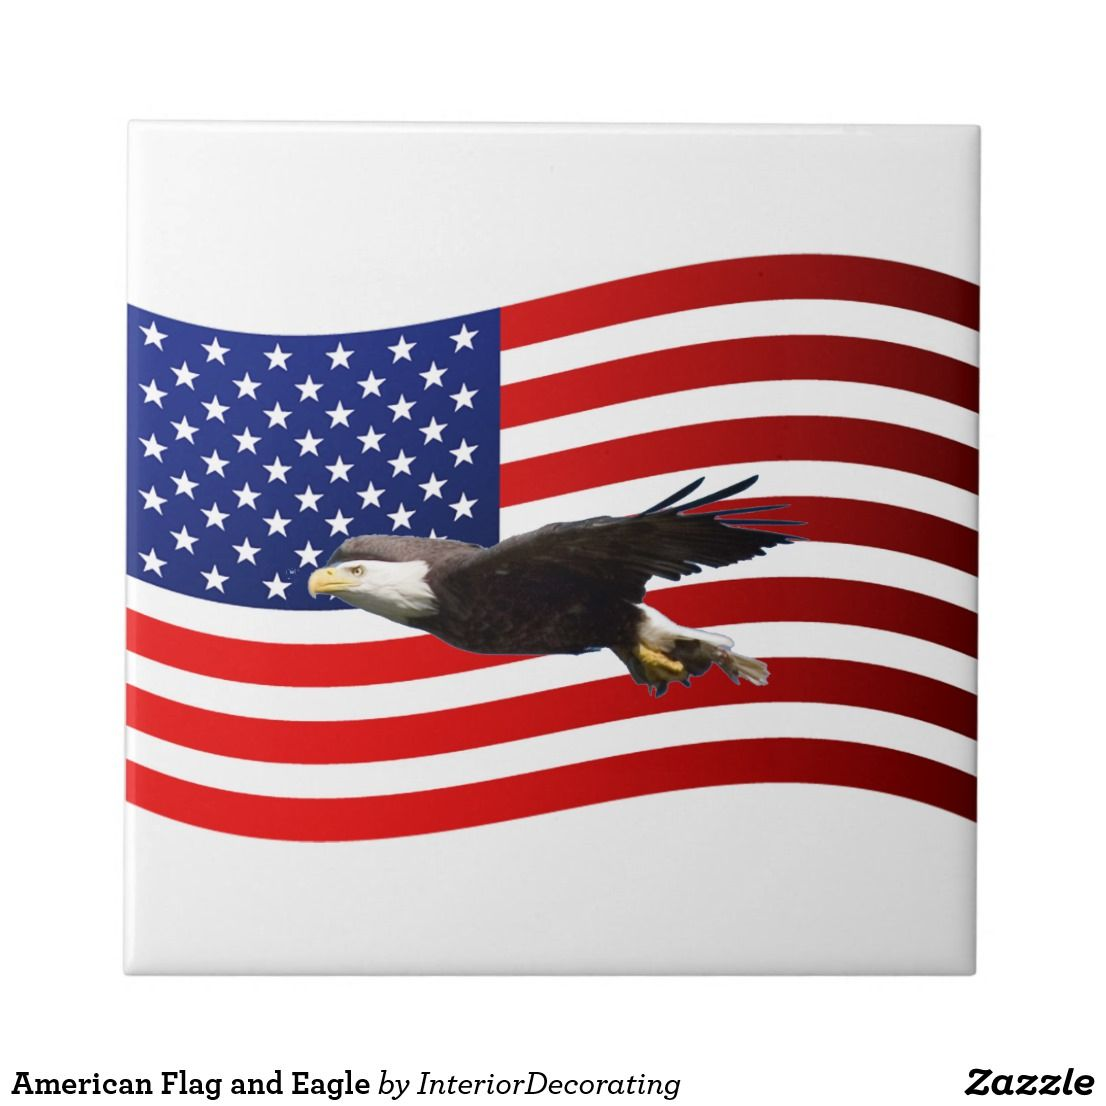 American Flag and Eagle Ceramic Tile | Zazzle.com #americanflagart